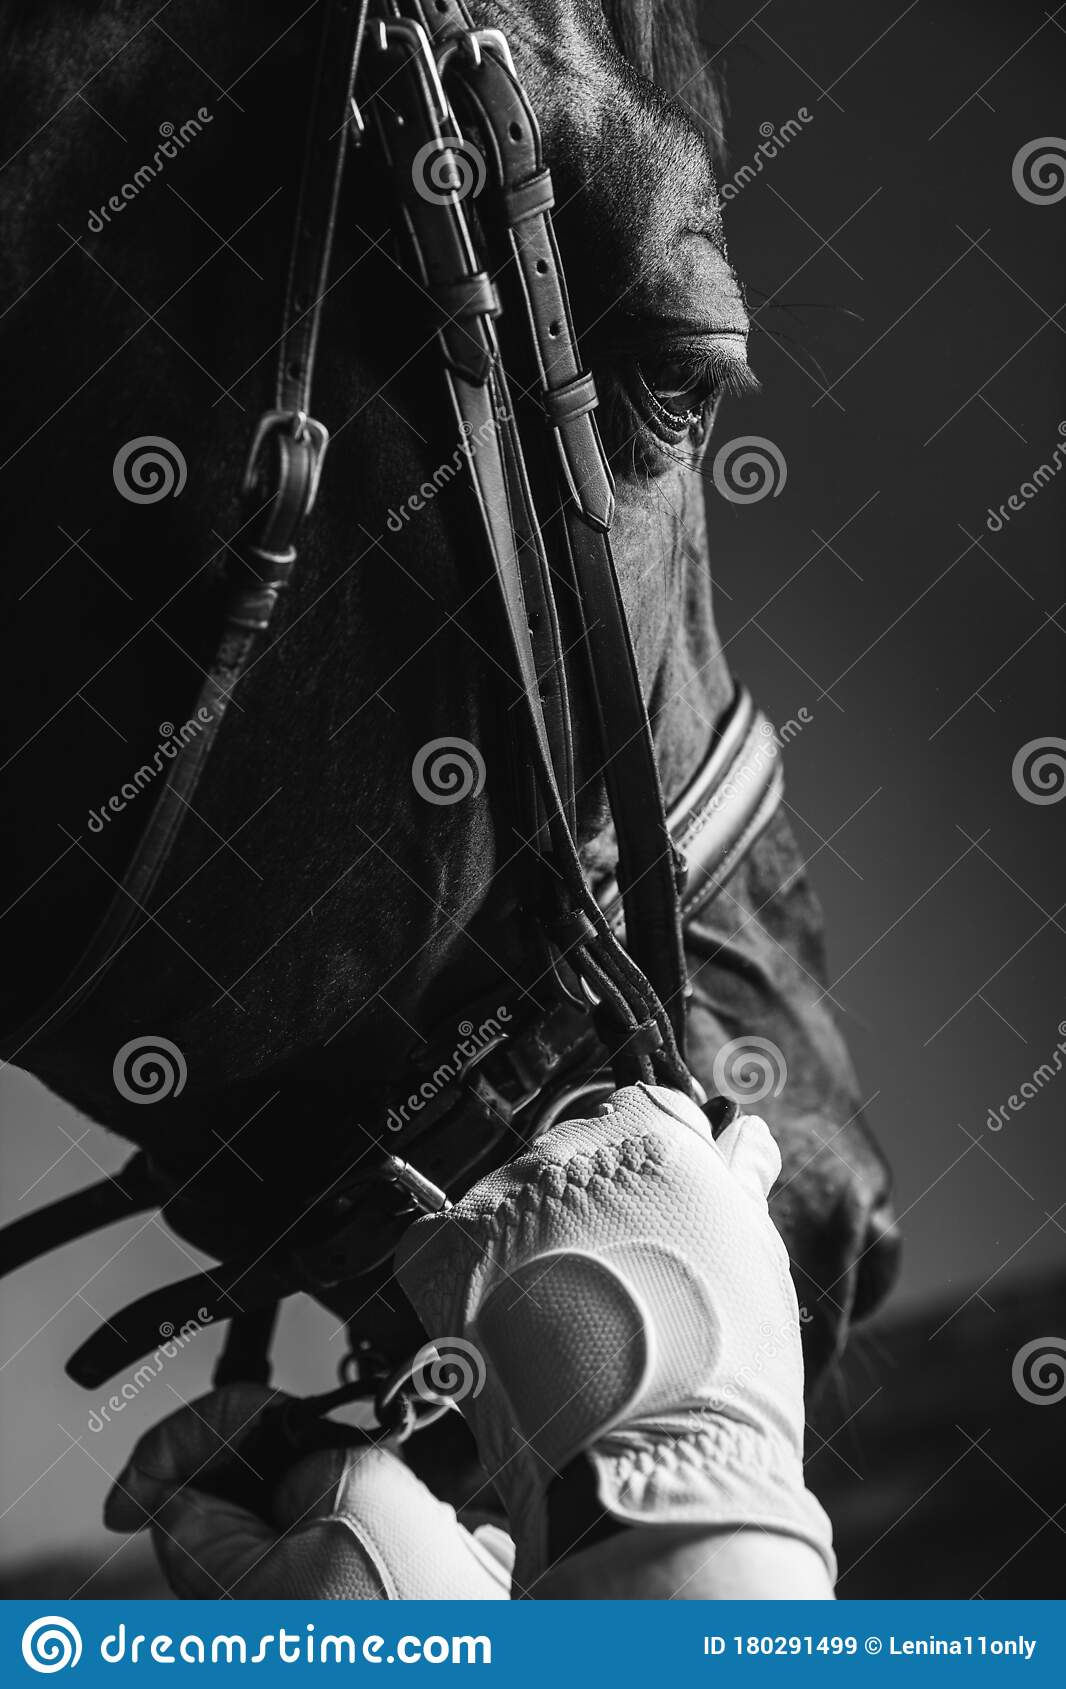 Horse Rider Saddle Up The Thoroughbred Horse For Dressage Or Equestrian Race Stock Image Image Of Stirrup Sweepstake 180291499